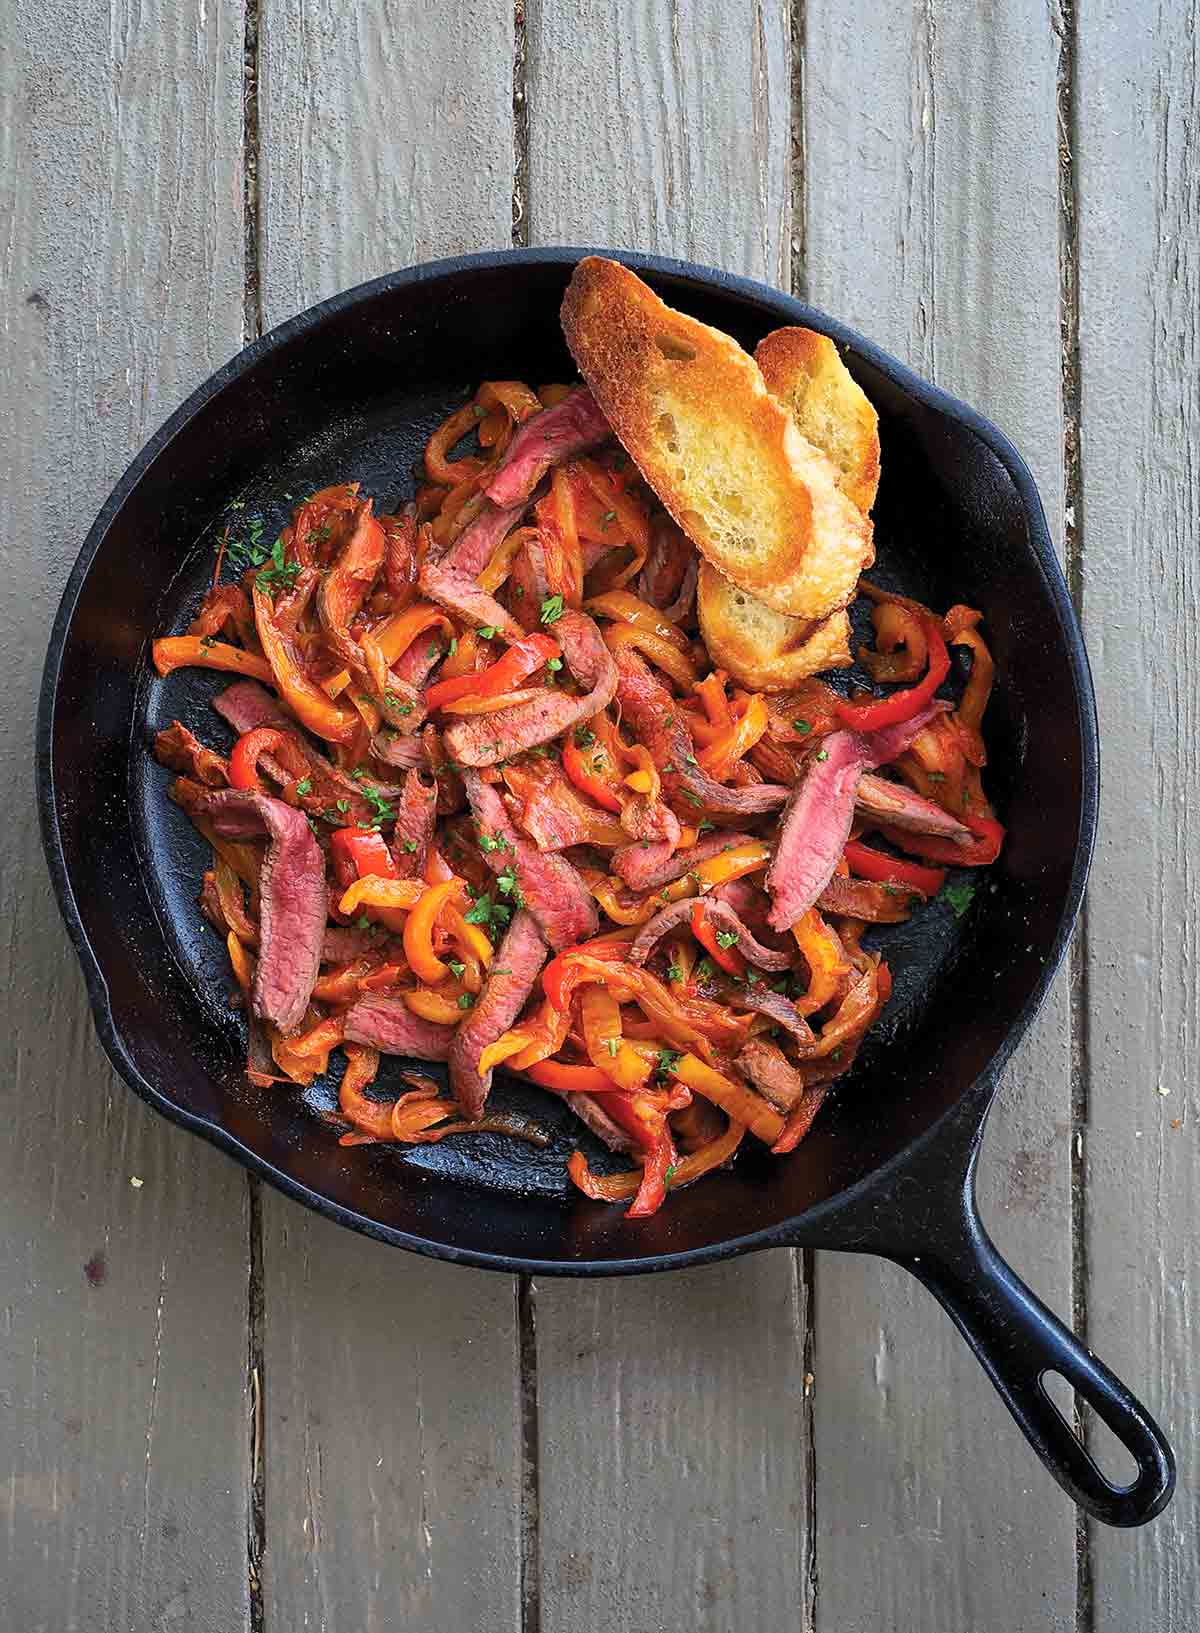 A cast-iron pan filled with skillet steak peperonata and two slices of toasted baguette.